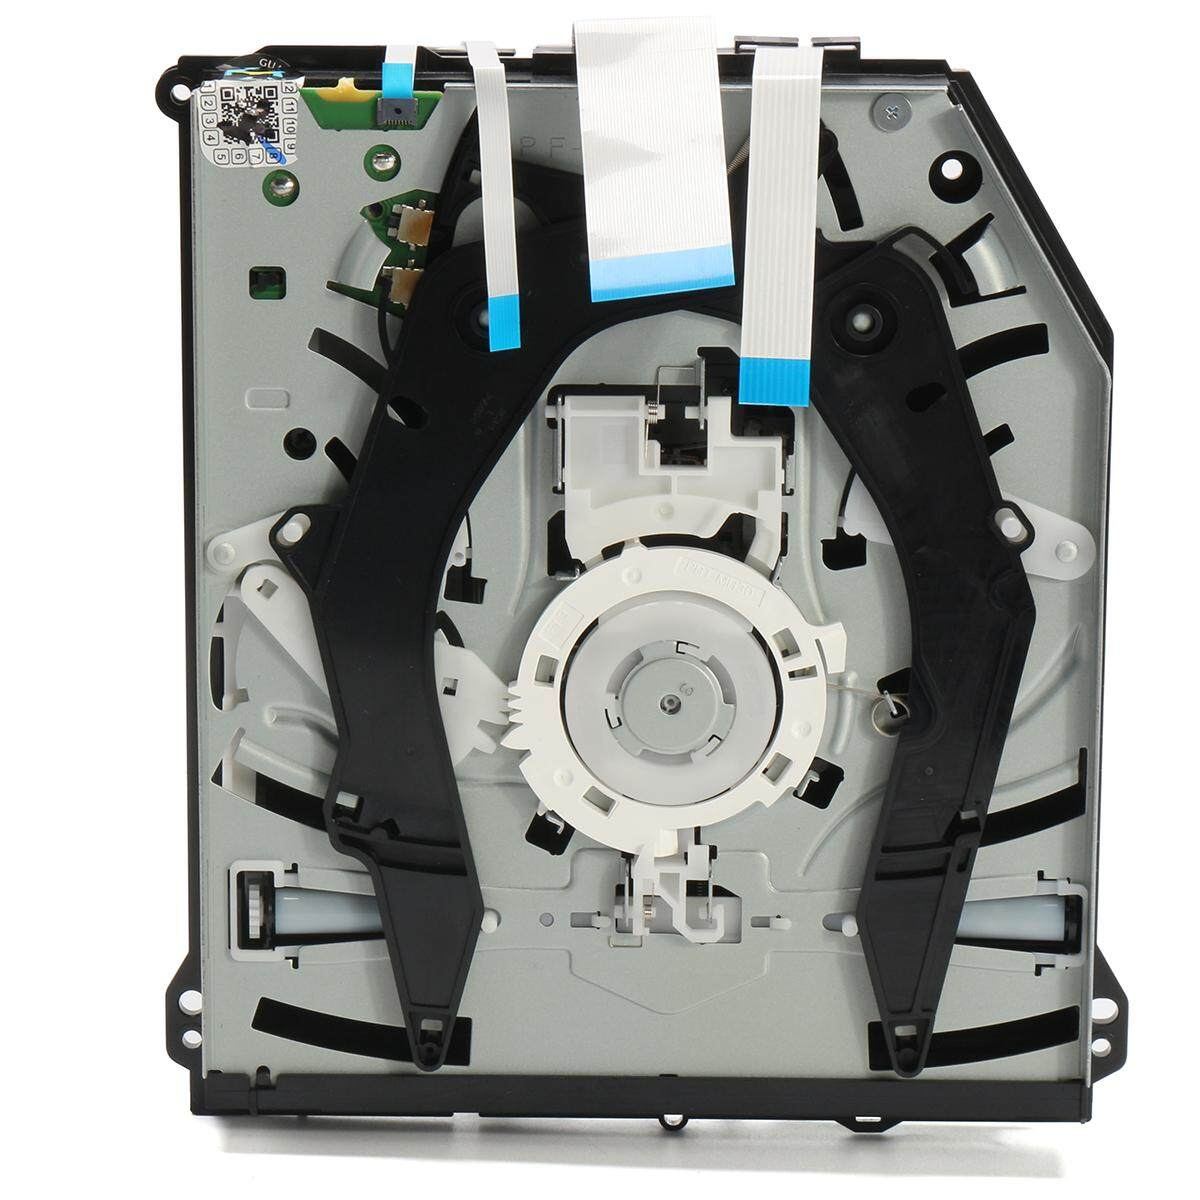 Blu-Ray Disk Drive Replacement Part For Sony Ps4 Cuh-1215a Cuh-1215b 500gb 1tb By Glimmer.